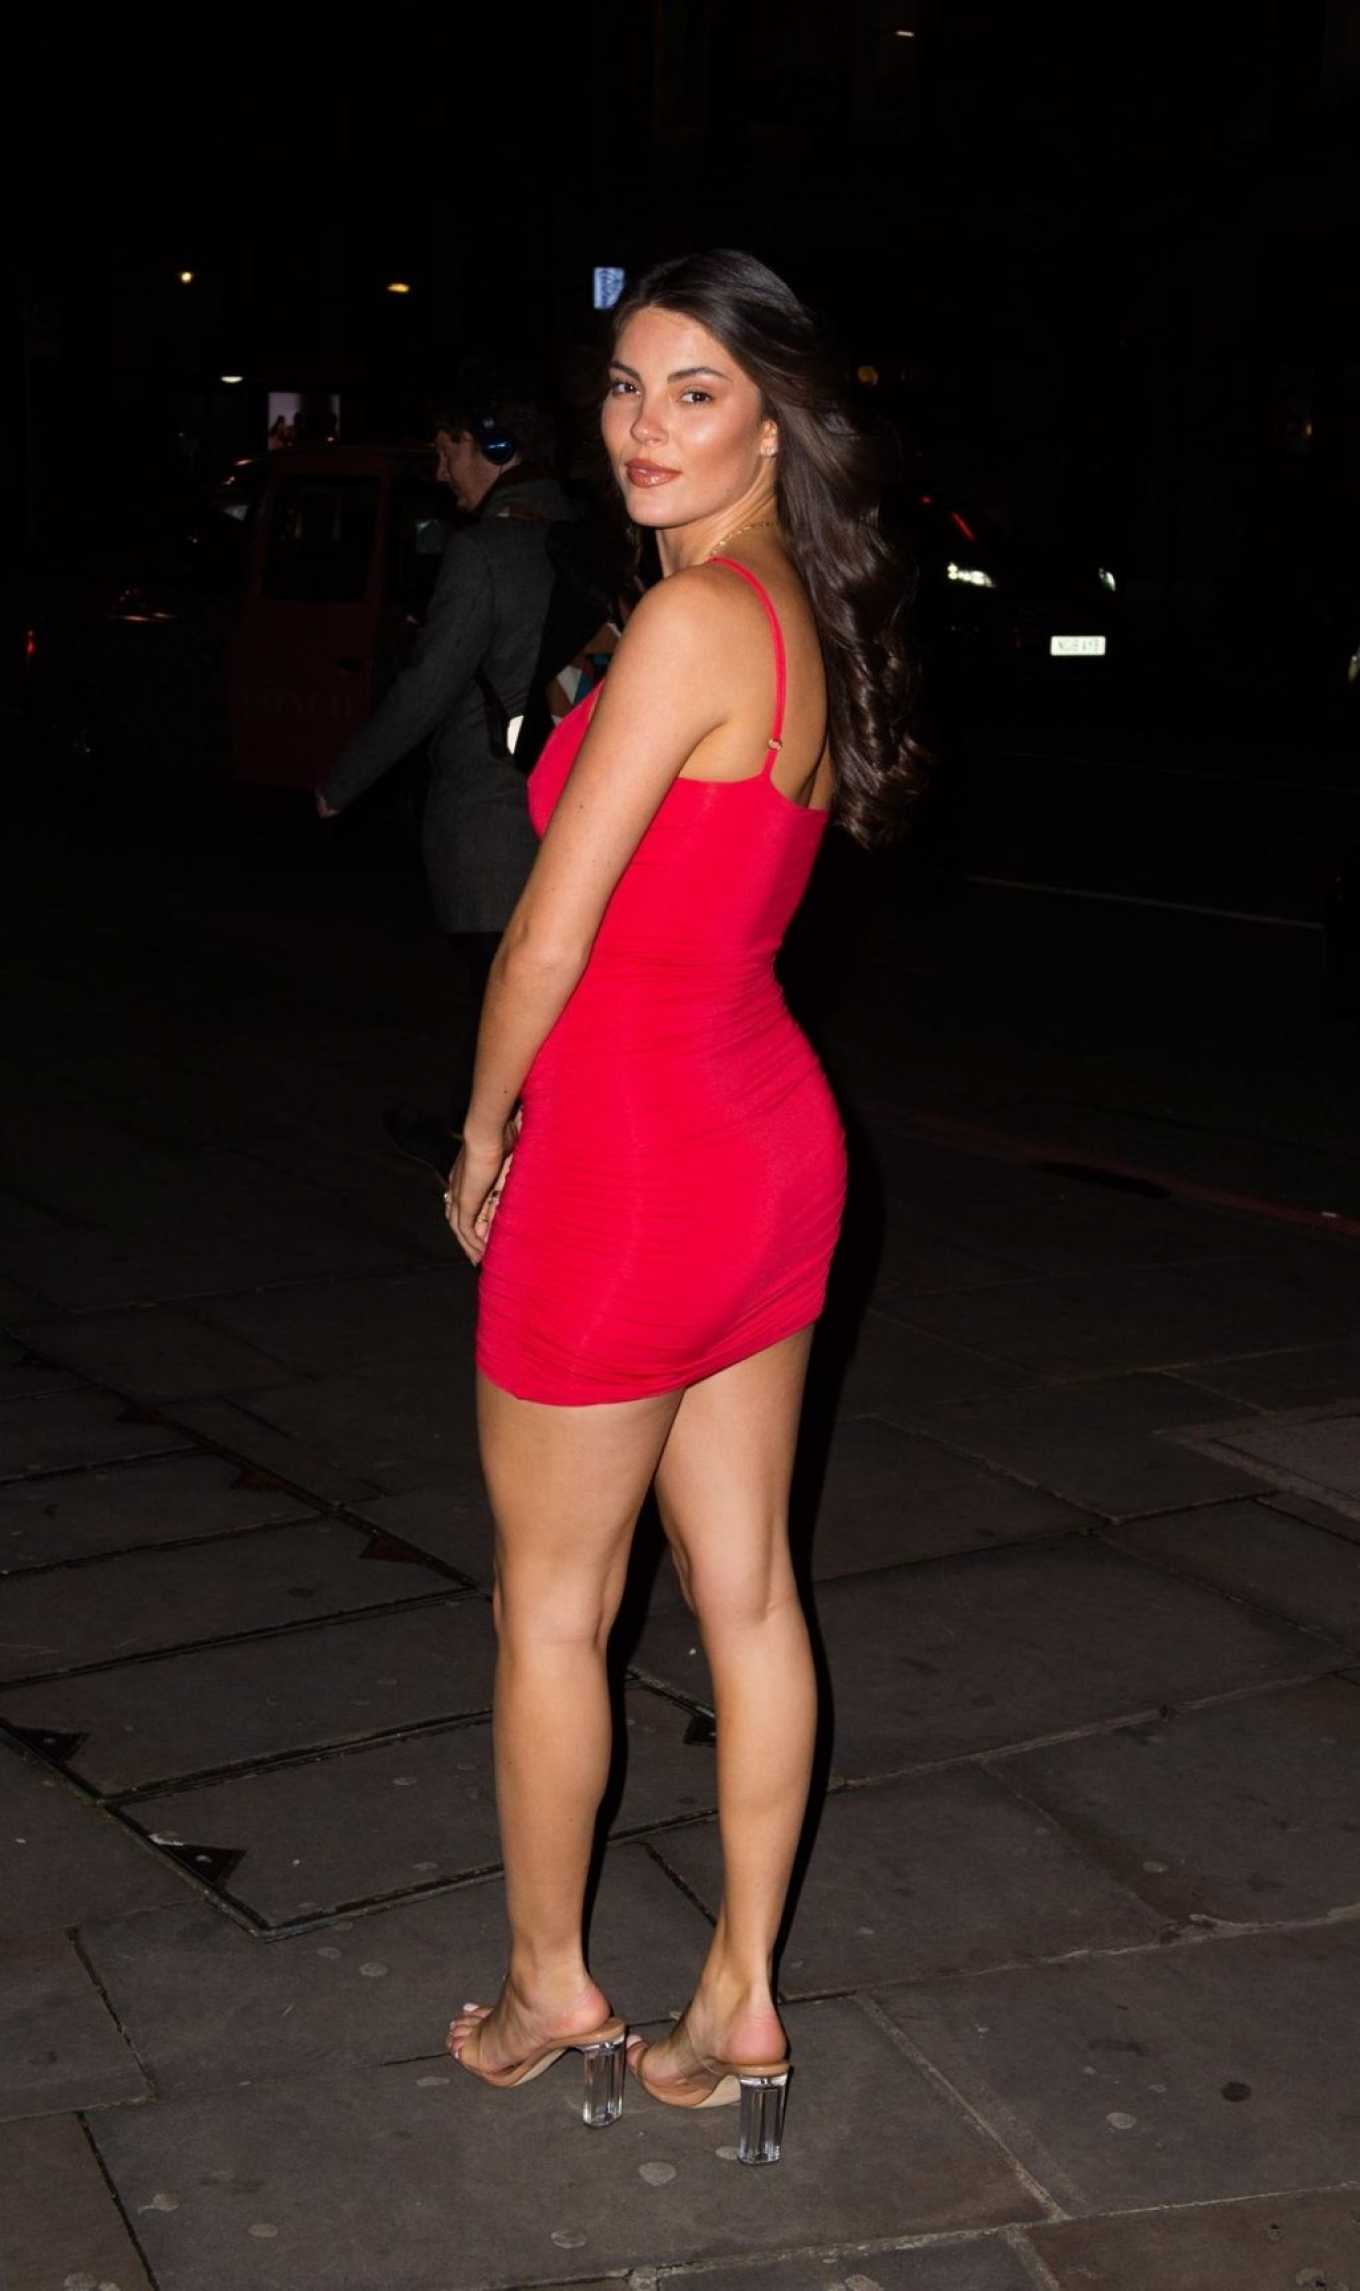 Courthouse Hotel Shoreditch: Rebecca Gormley 2020 : Rebecca Gormley In Red Mini Dress-10